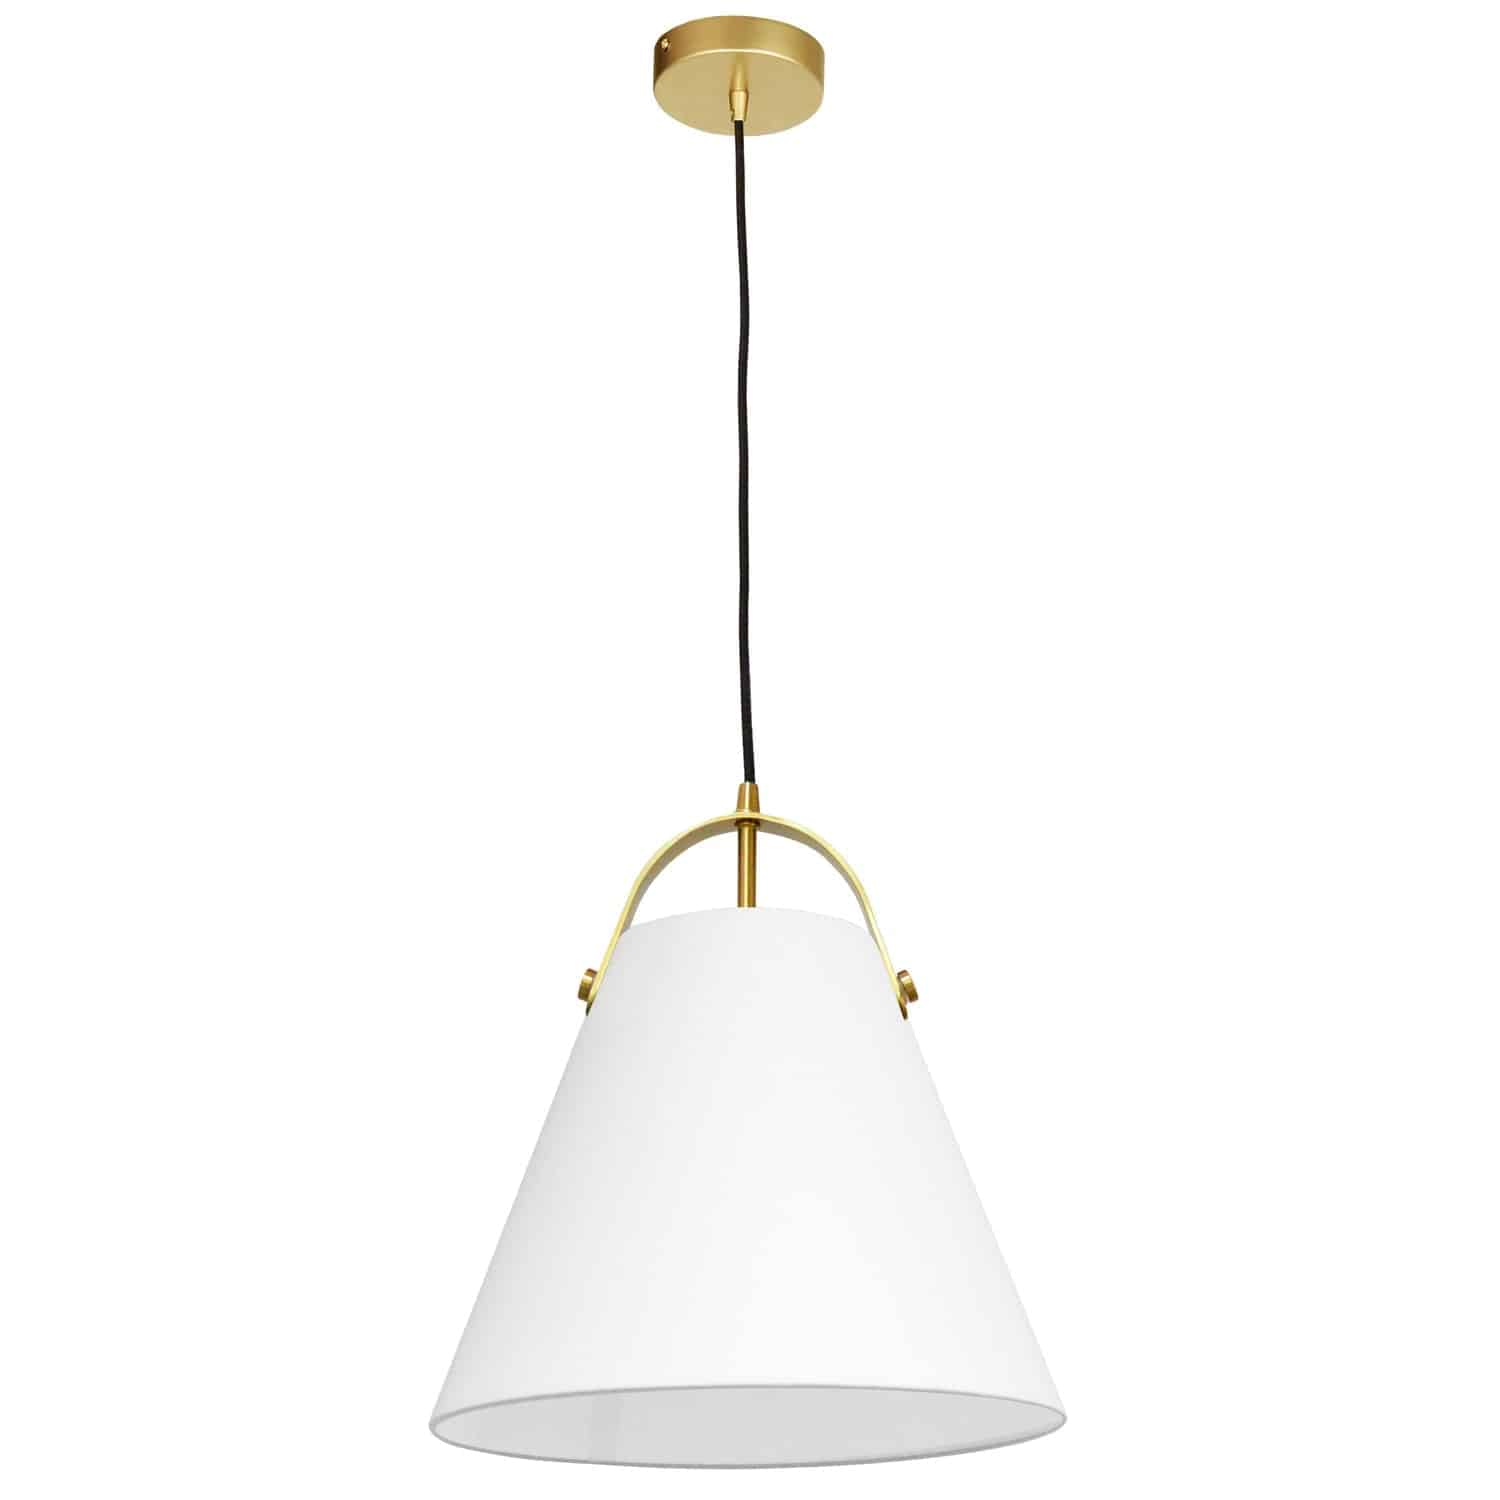 1 Light Emperor Pendant Aged Brass with White Shade